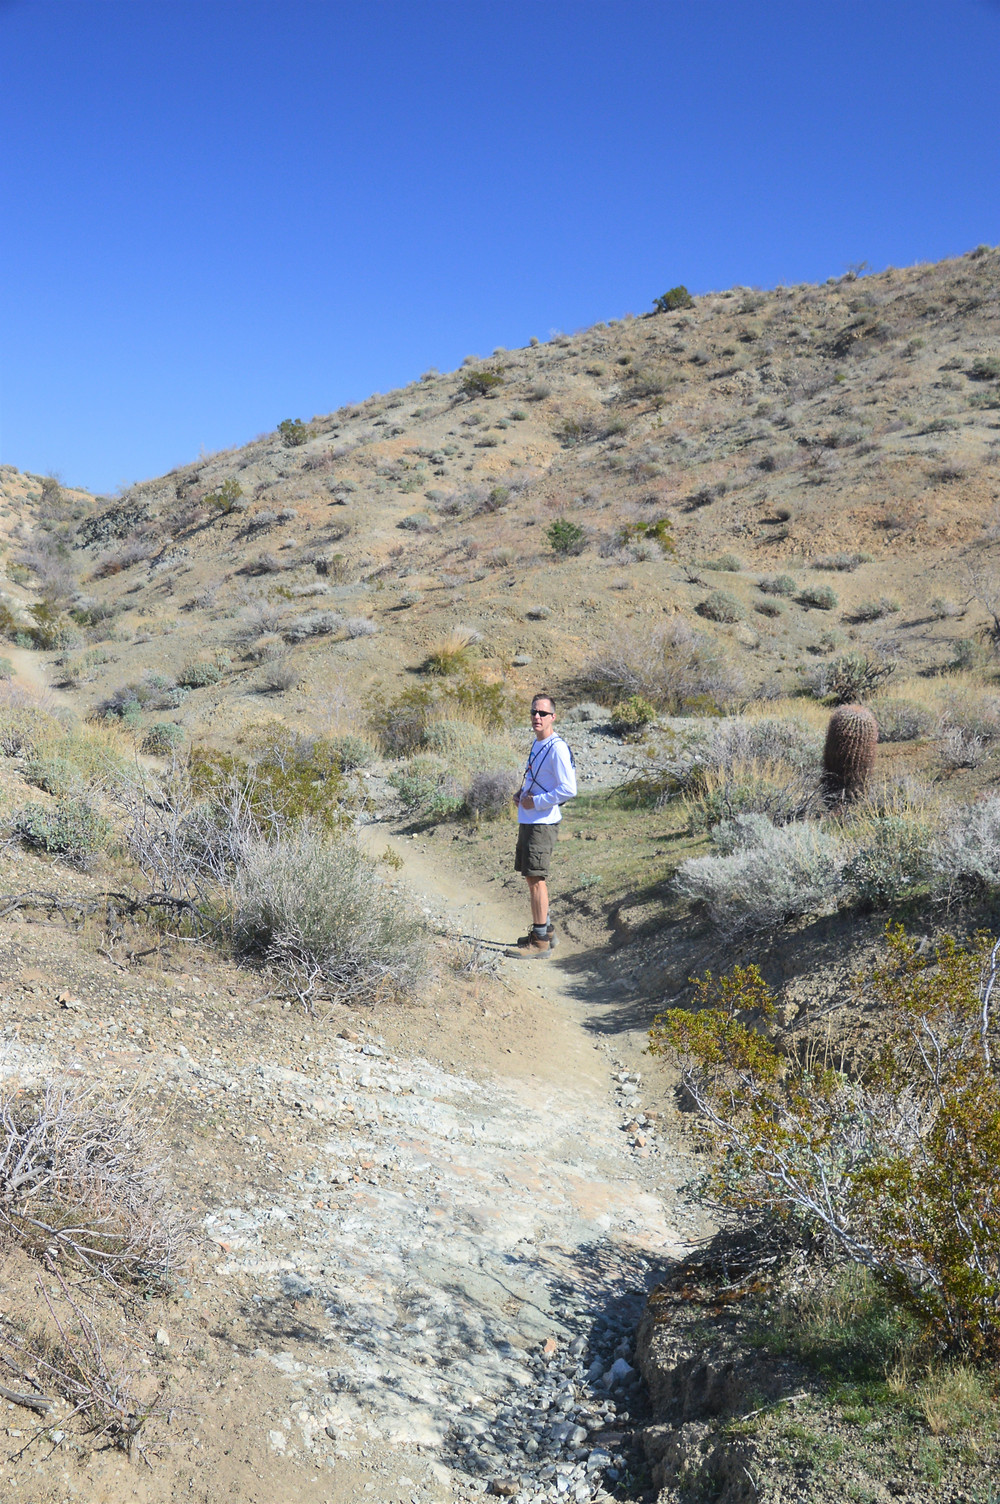 Hiking to Murray Hill in the foothills of the San Jacinto and Santa Rosa Mountains